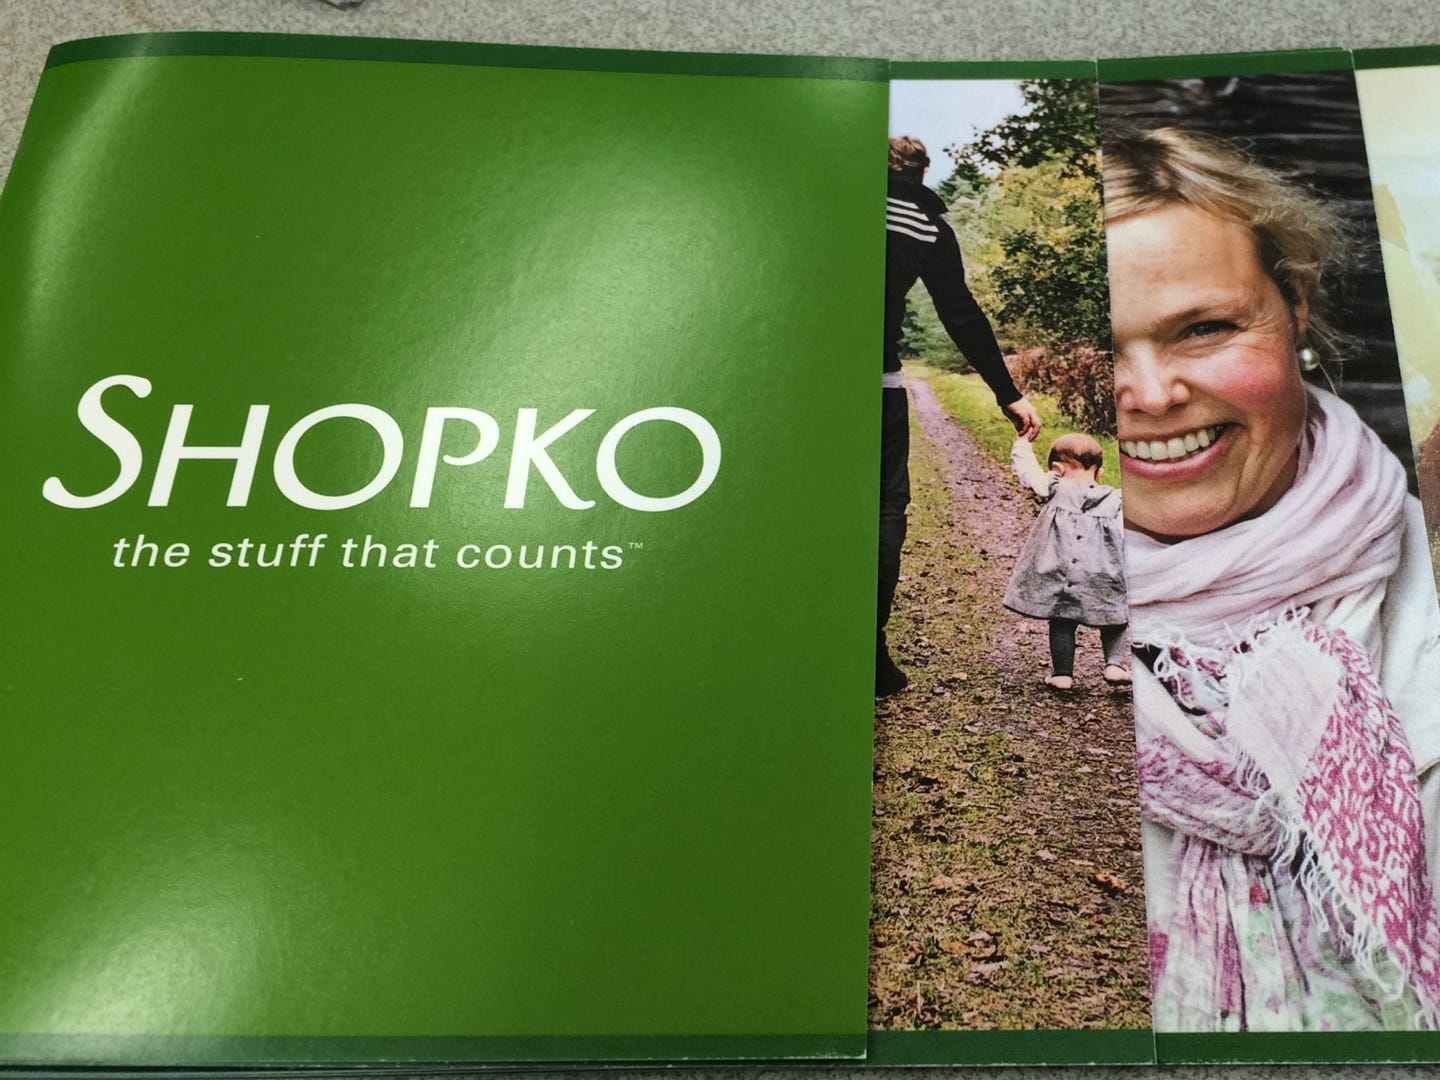 Promotional materials produced as part of the rebranding of Shopko stores in 2015.